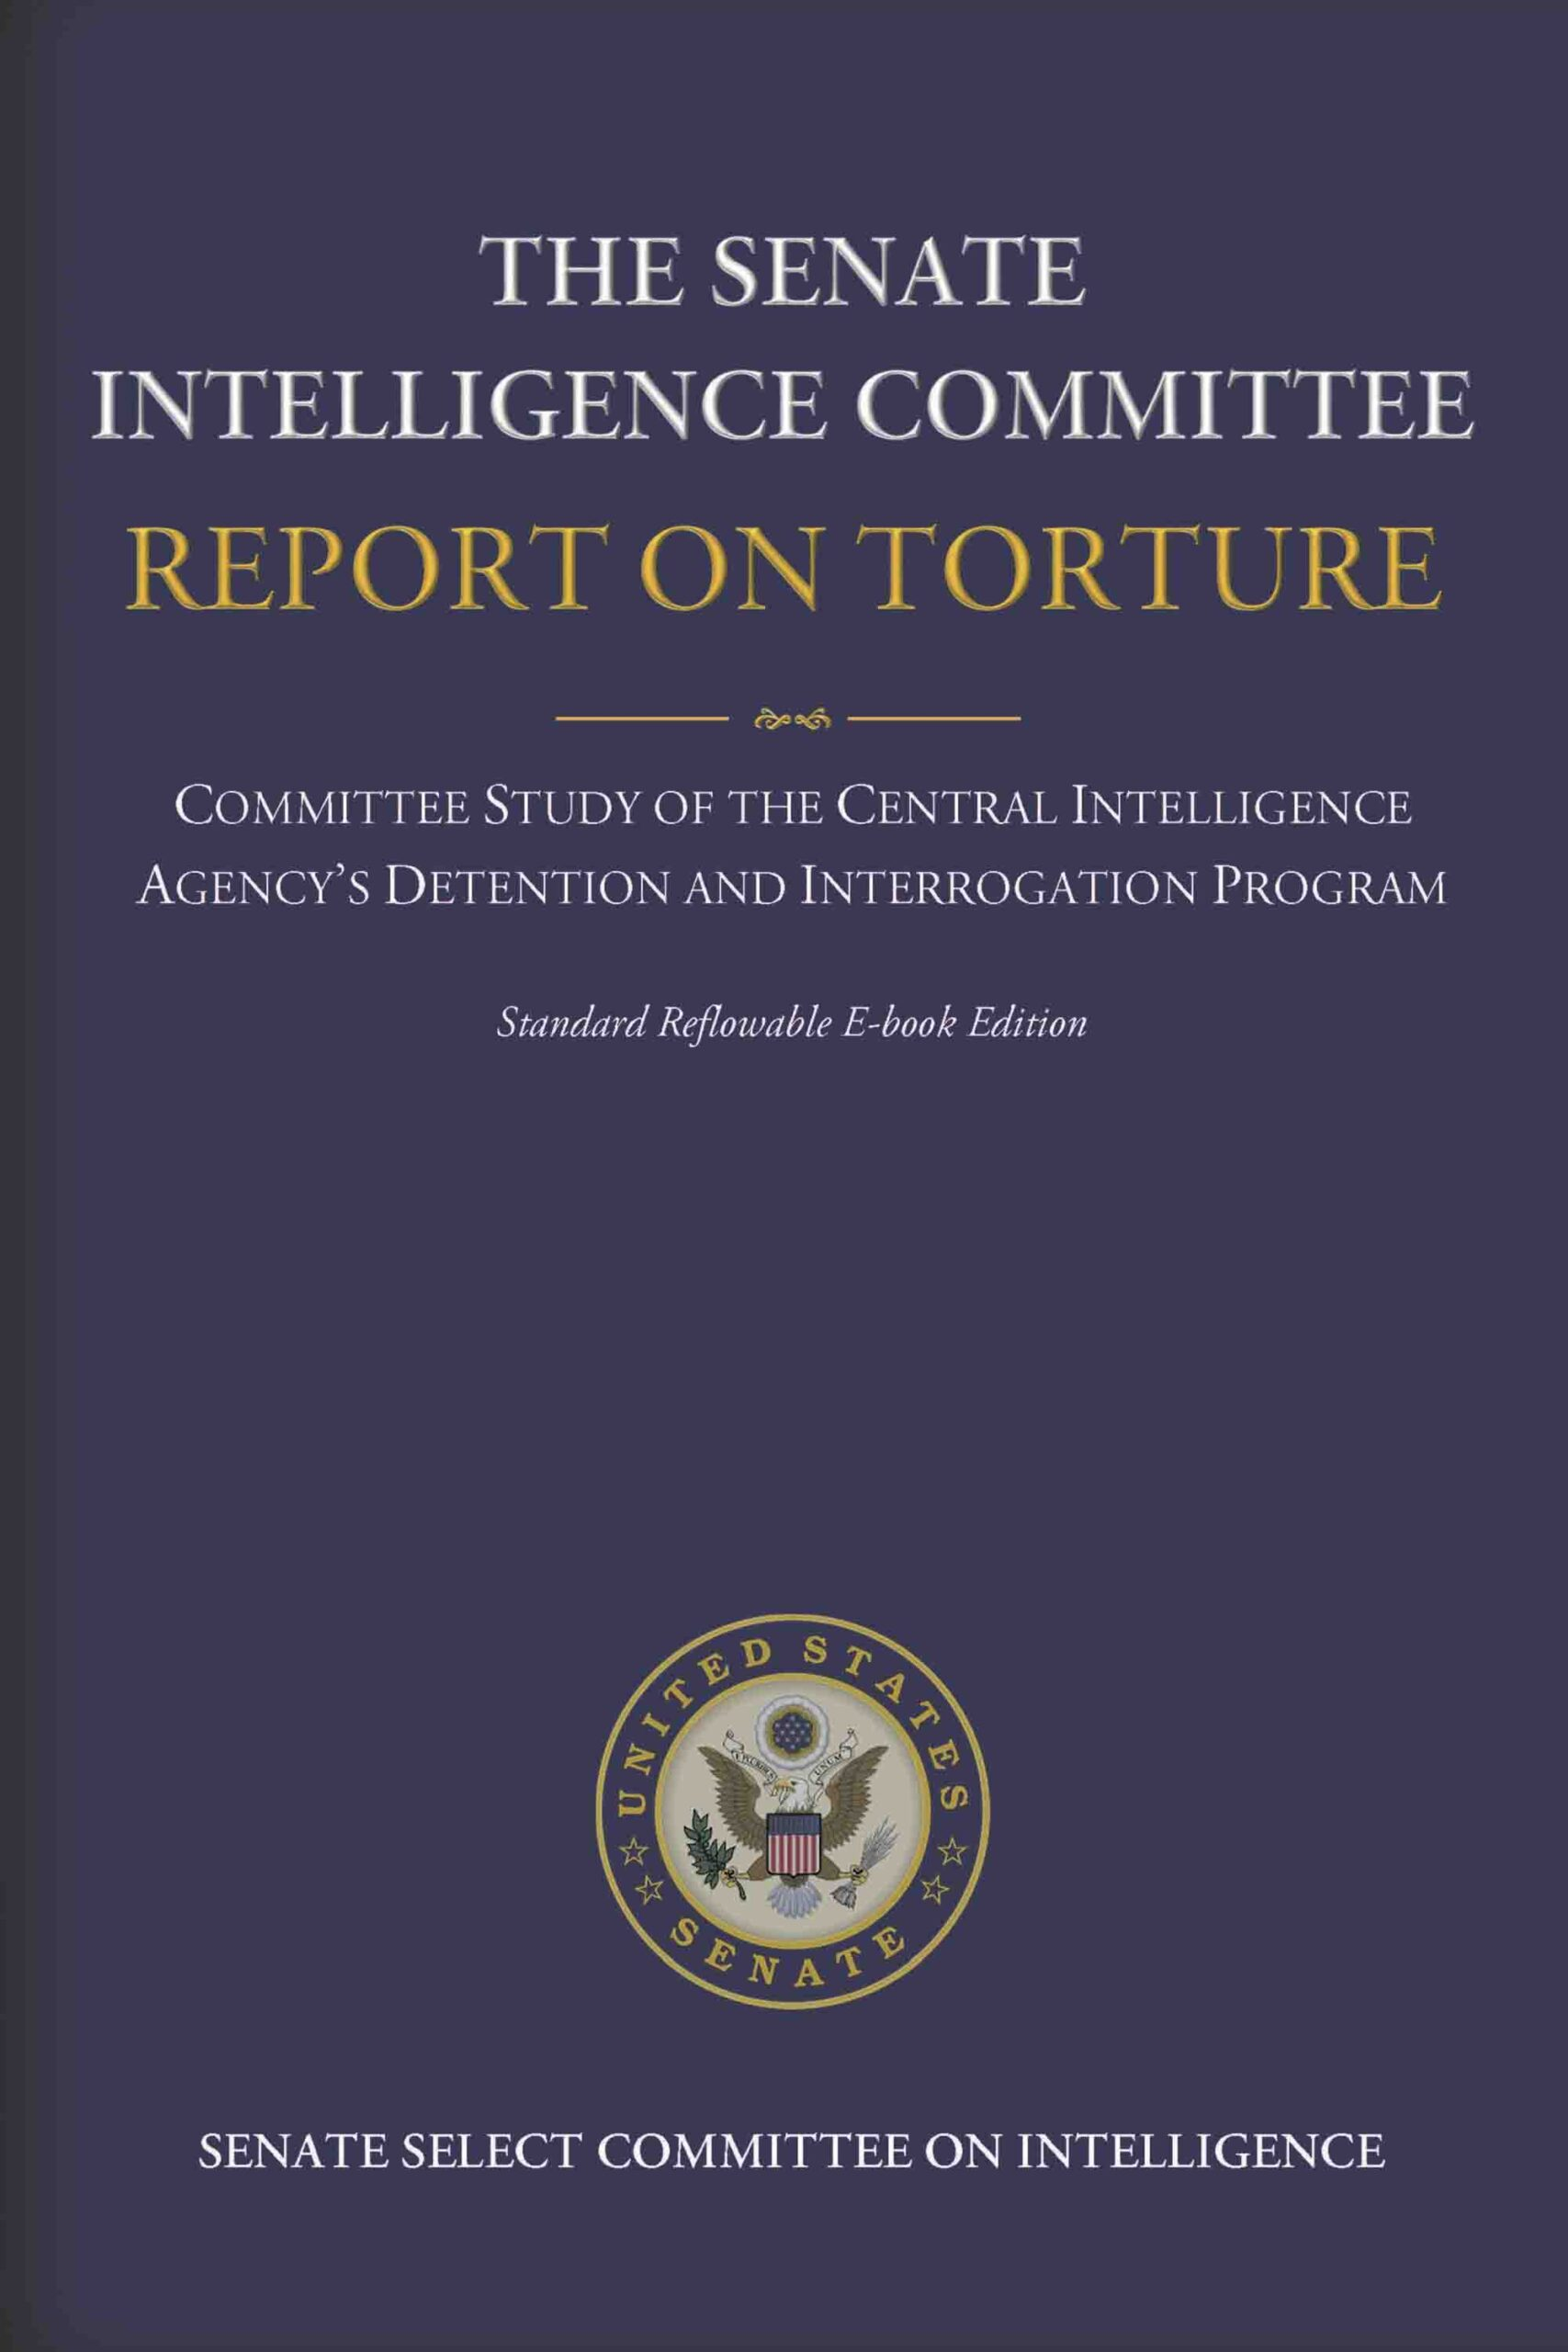 The Senate Intelligence Committee Report on Torture – Complete Standard Reflowable Flexible Ebook Edition